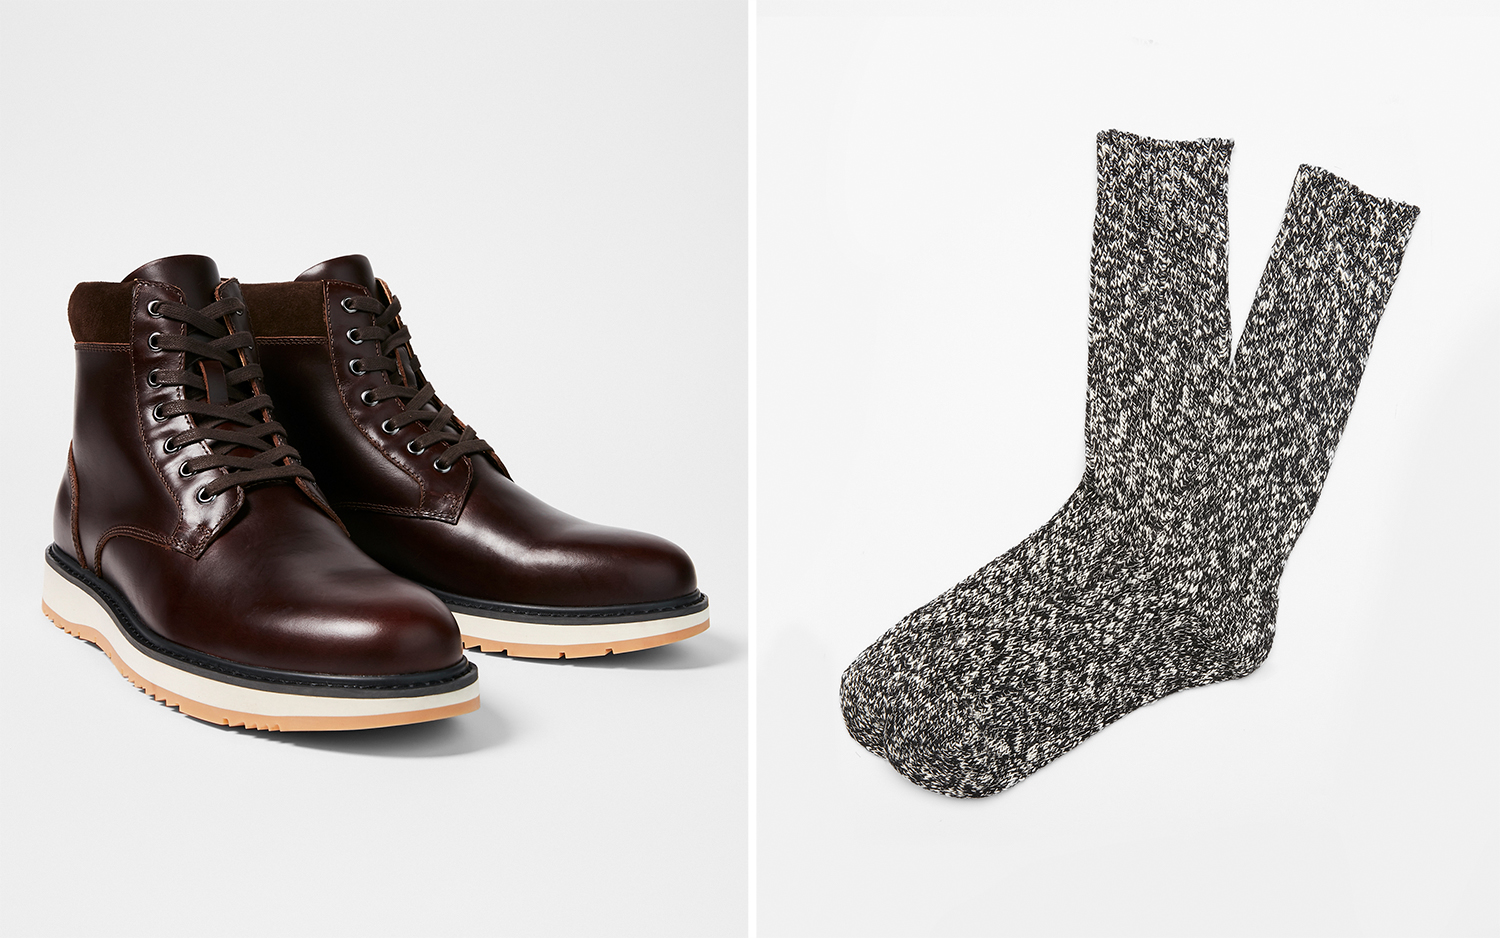 contrast-sole-leather-boots-boot-socks